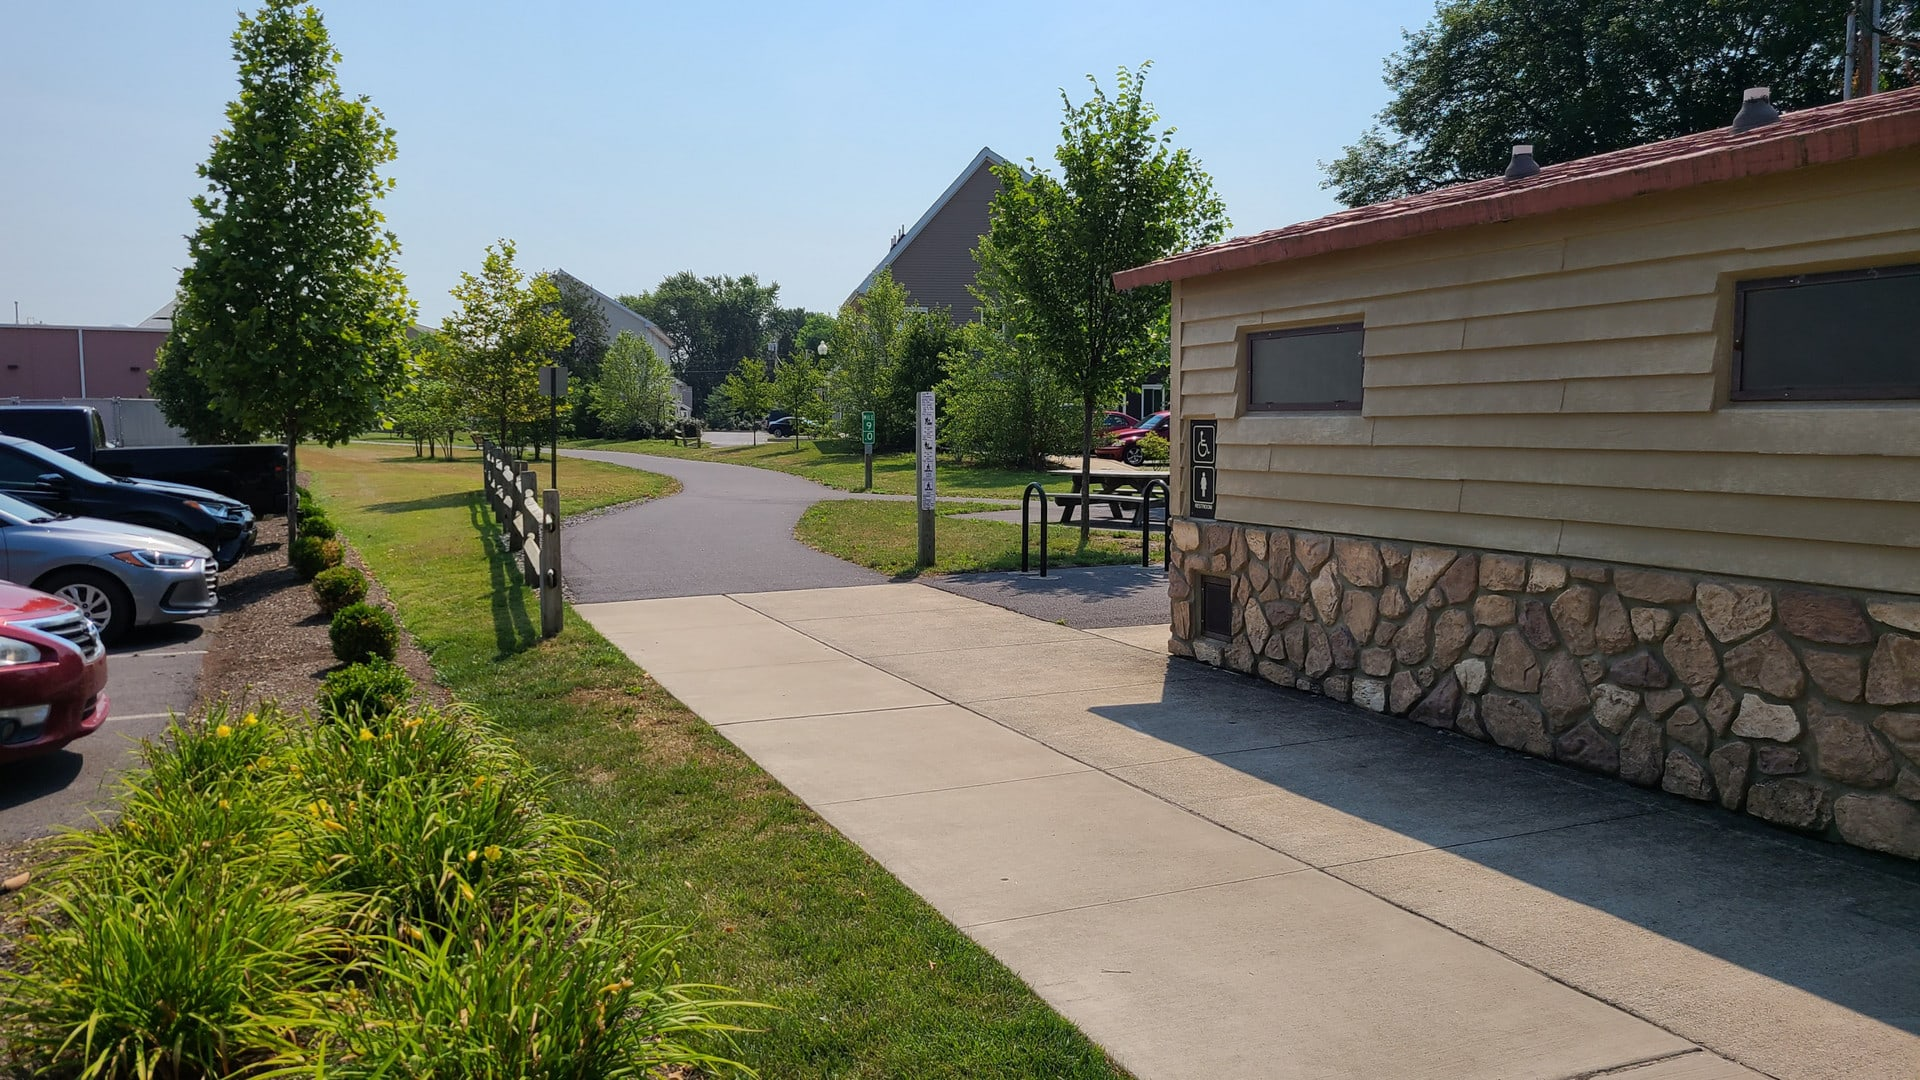 The trail runs past some public restrooms before snaking through a tree-lined development.